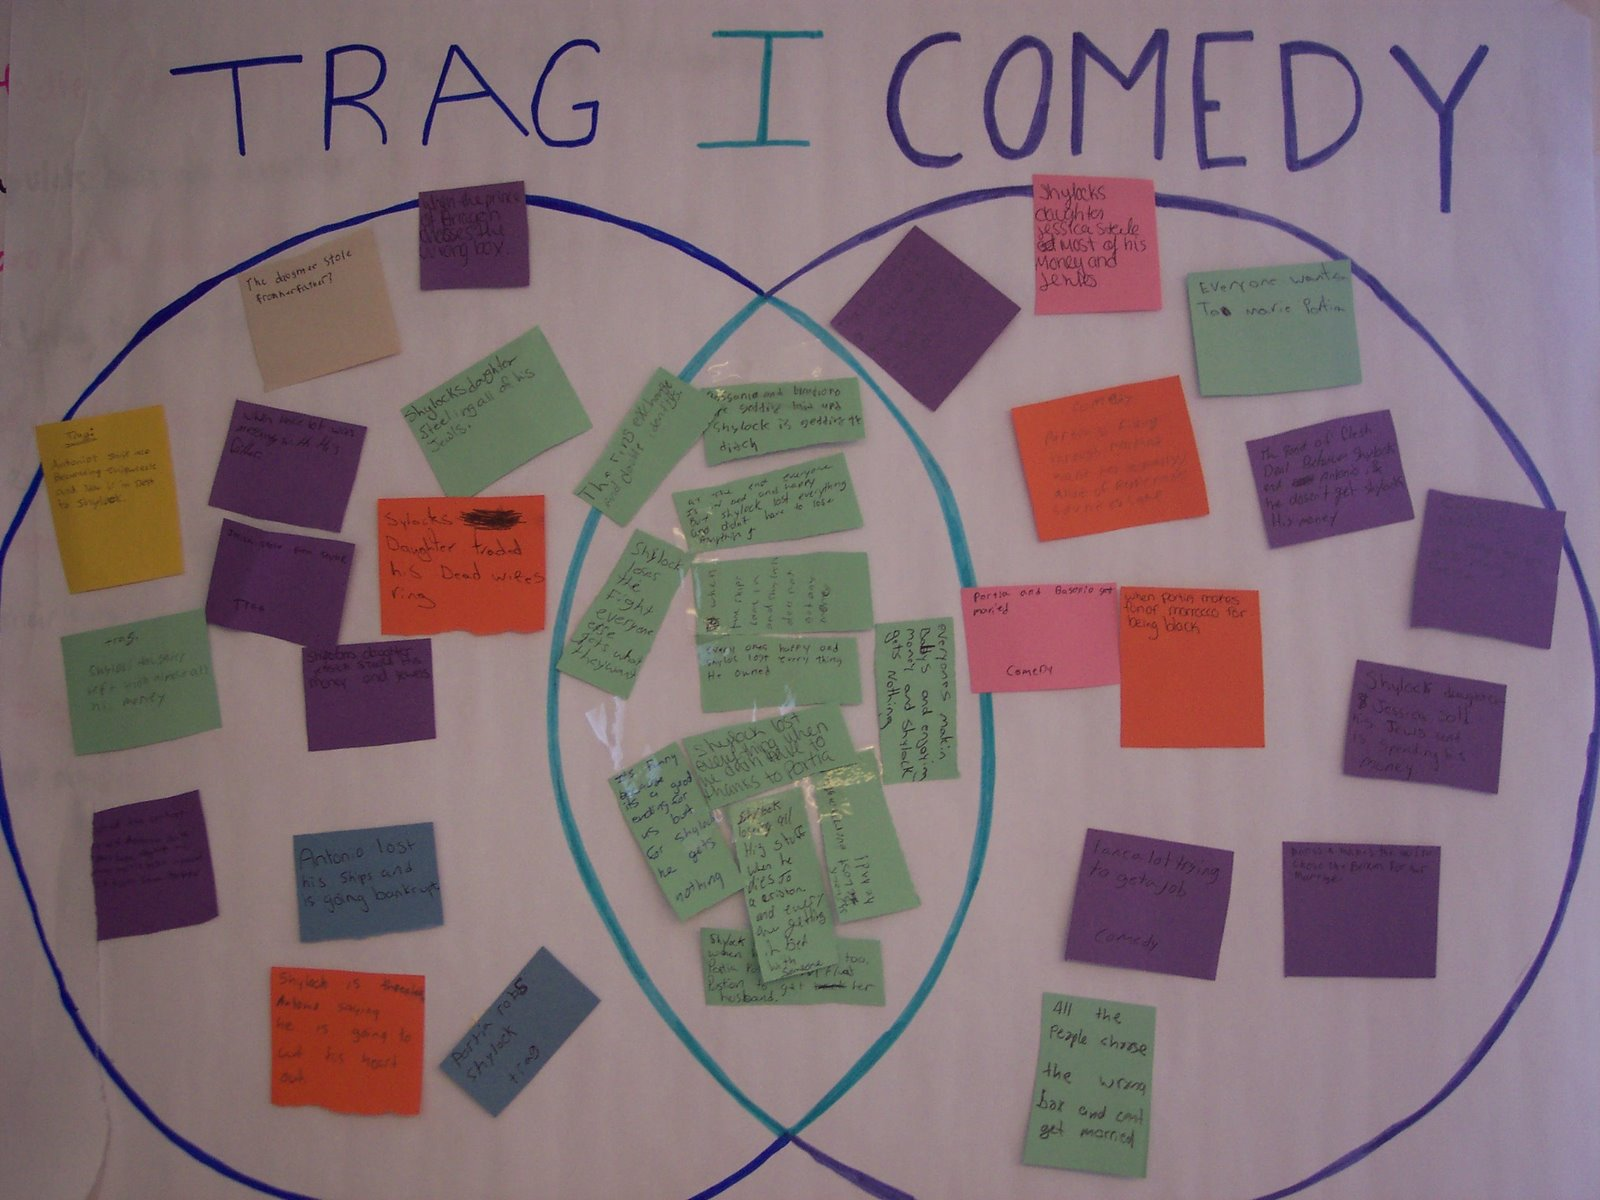 This chart was constructed by sophomore students as we read William Shakespeare's The Merchant of Venice. In each section of the Venn Diagram, students wrote examples and evidence from the text to show that this play had contained elements of tragedy, comedy, and tragicomedy.